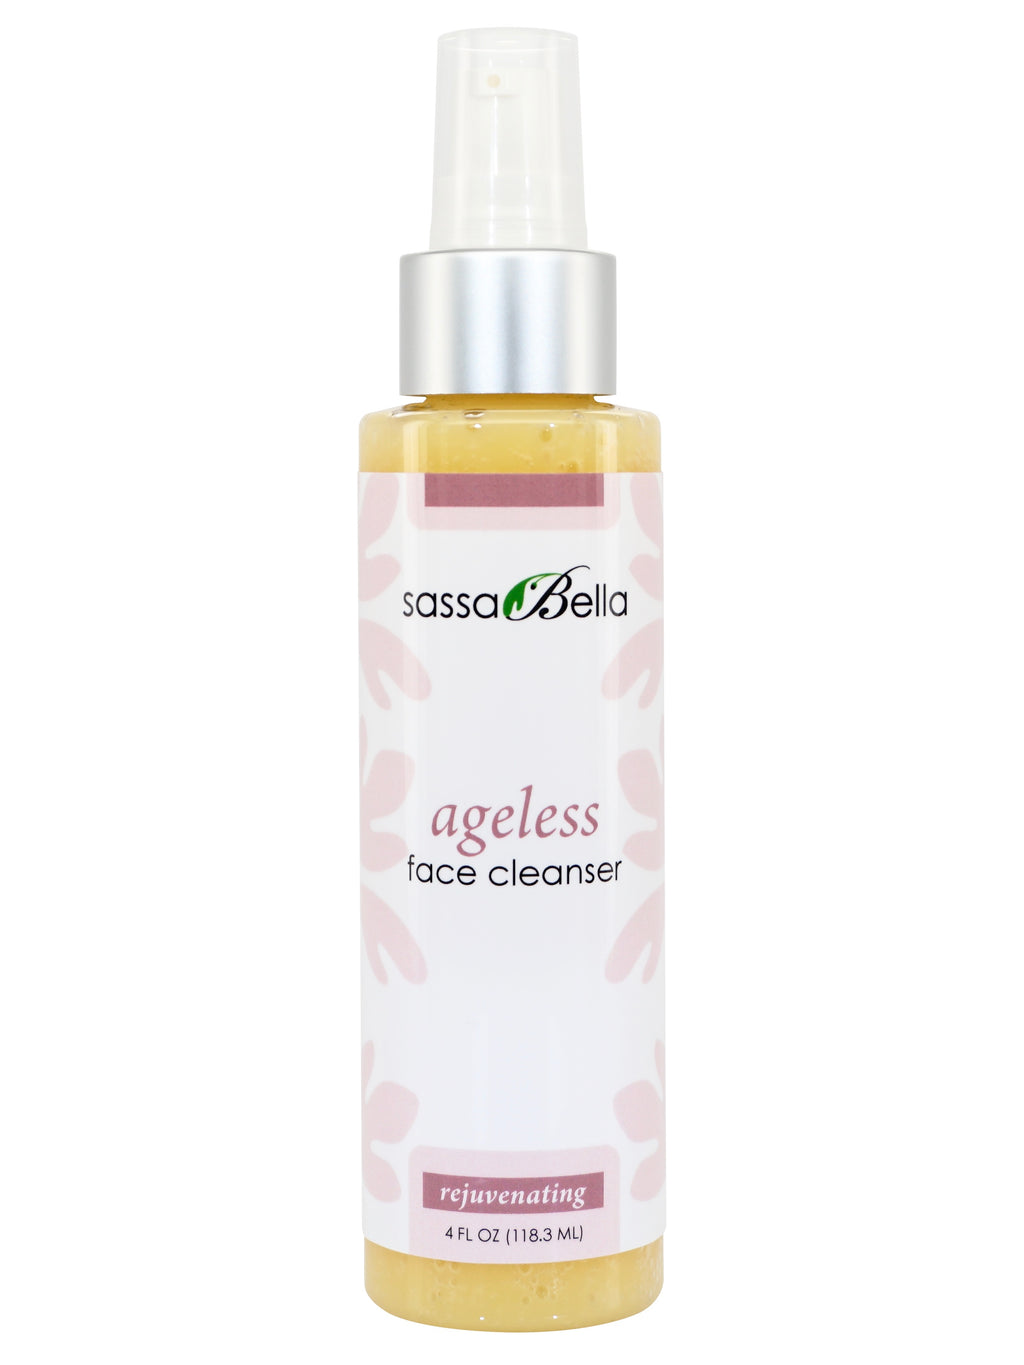 Ageless Face Cleanser